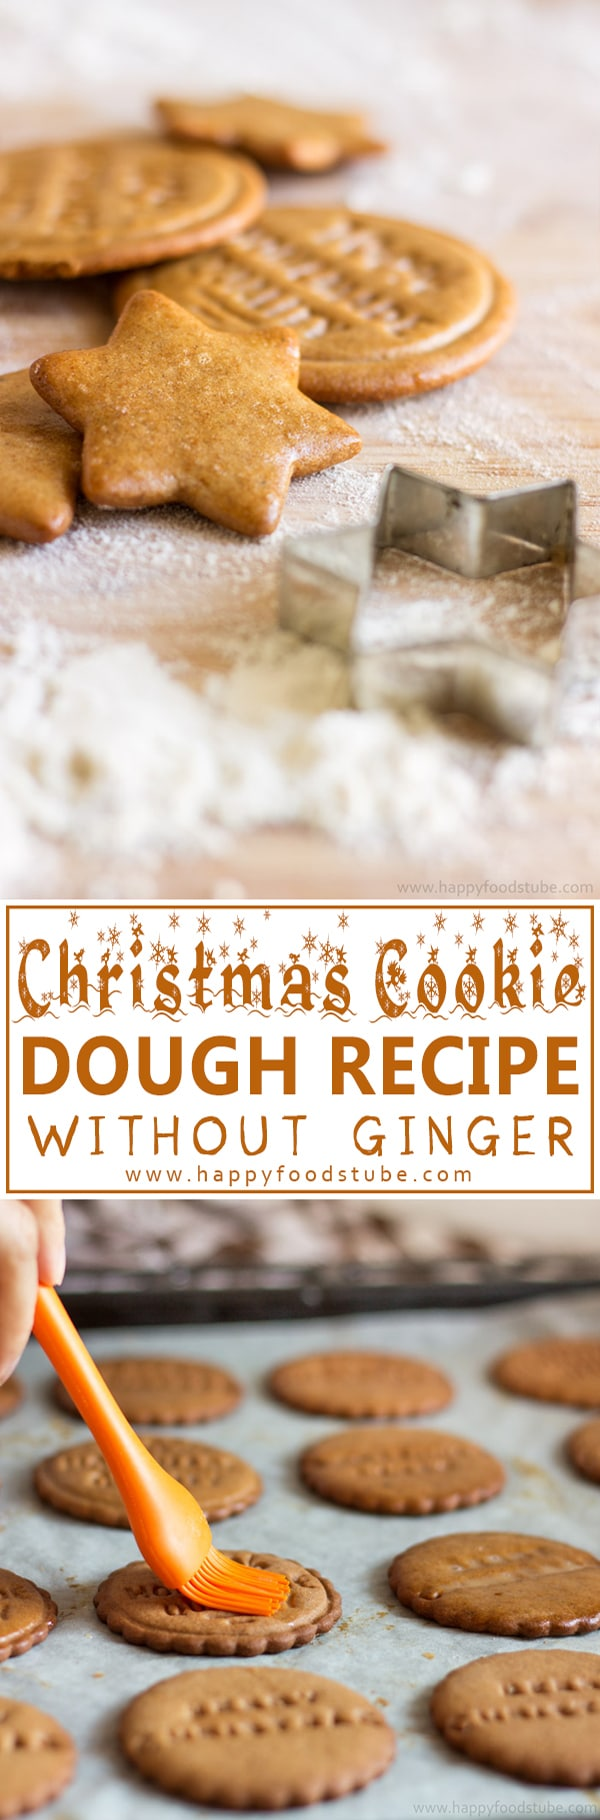 Best Christmas Cookie Dough Recipe without Ginger. Homemade gingerbread cookies with honey, cinnamon and cloves! Ready in 10 minutes! | happyfoodstube.com